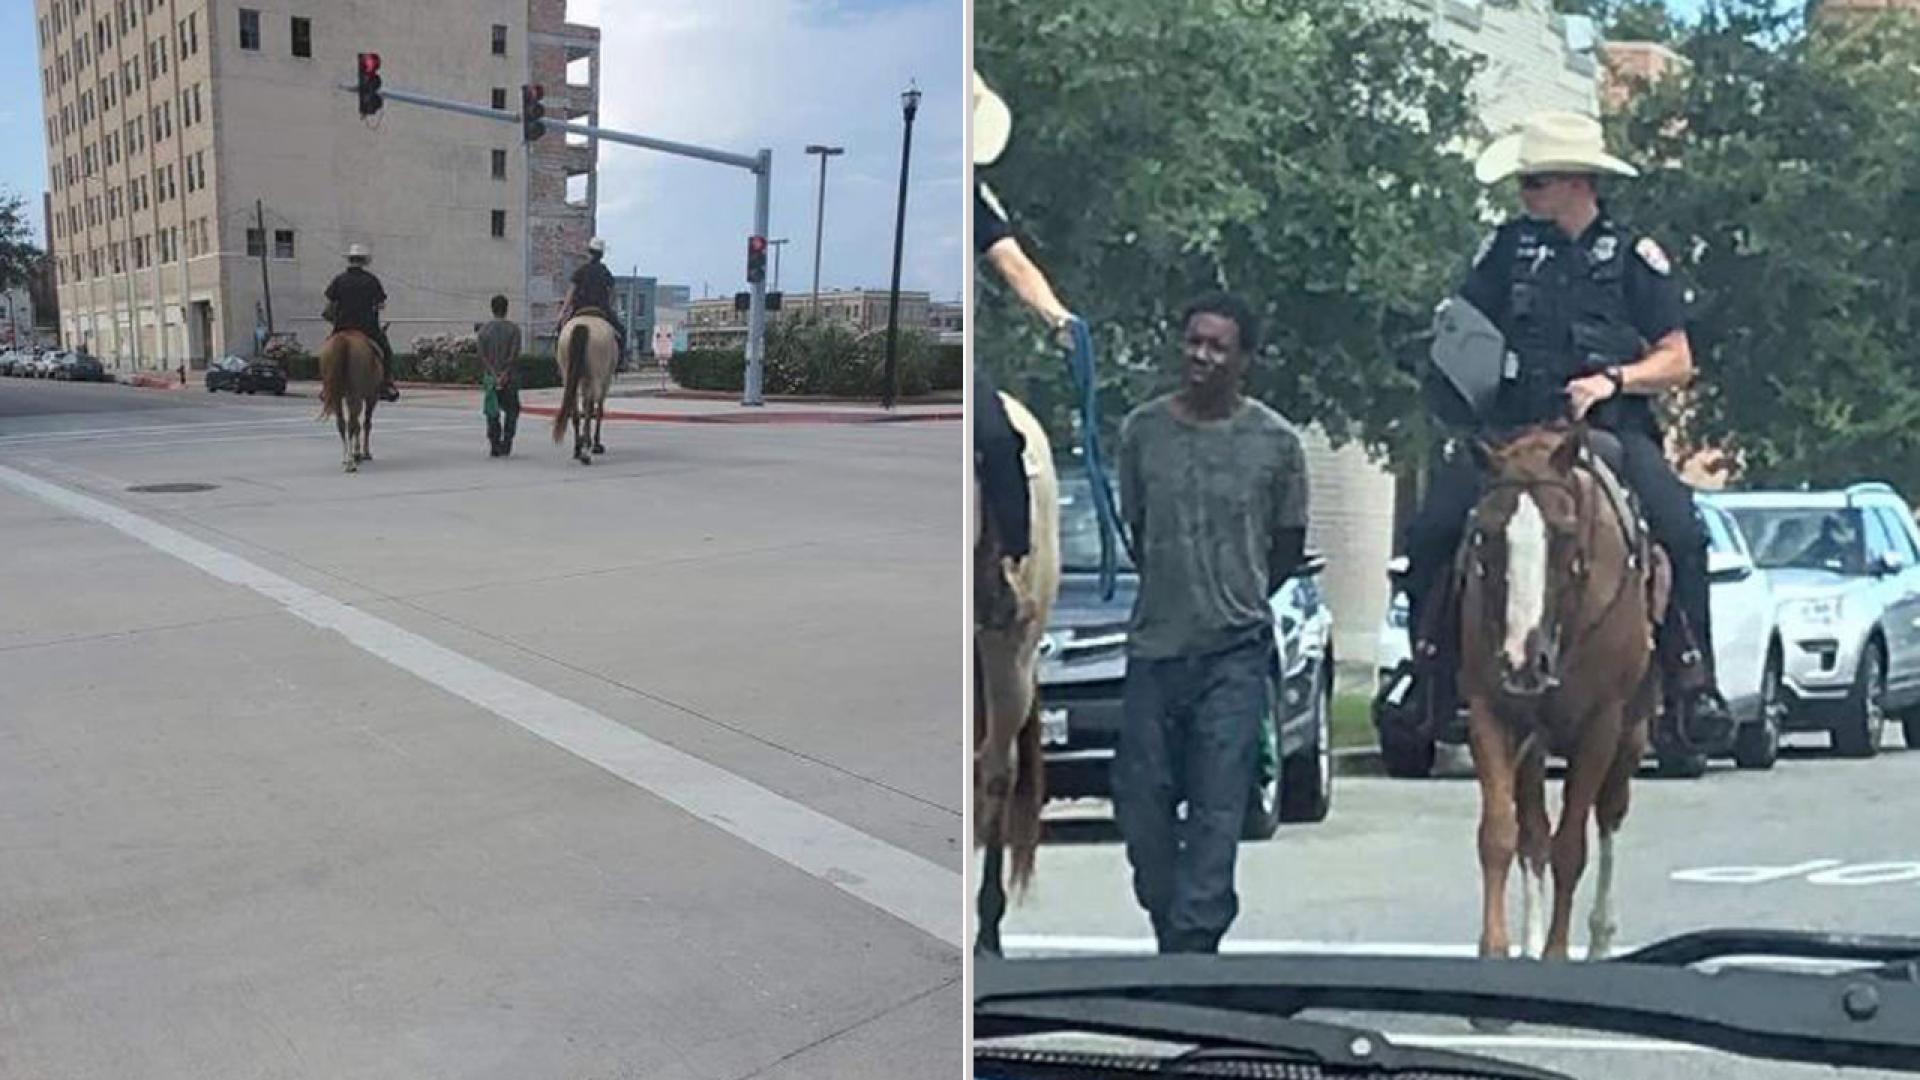 The controversial photo prompted an apology from the Galveston Police Department.